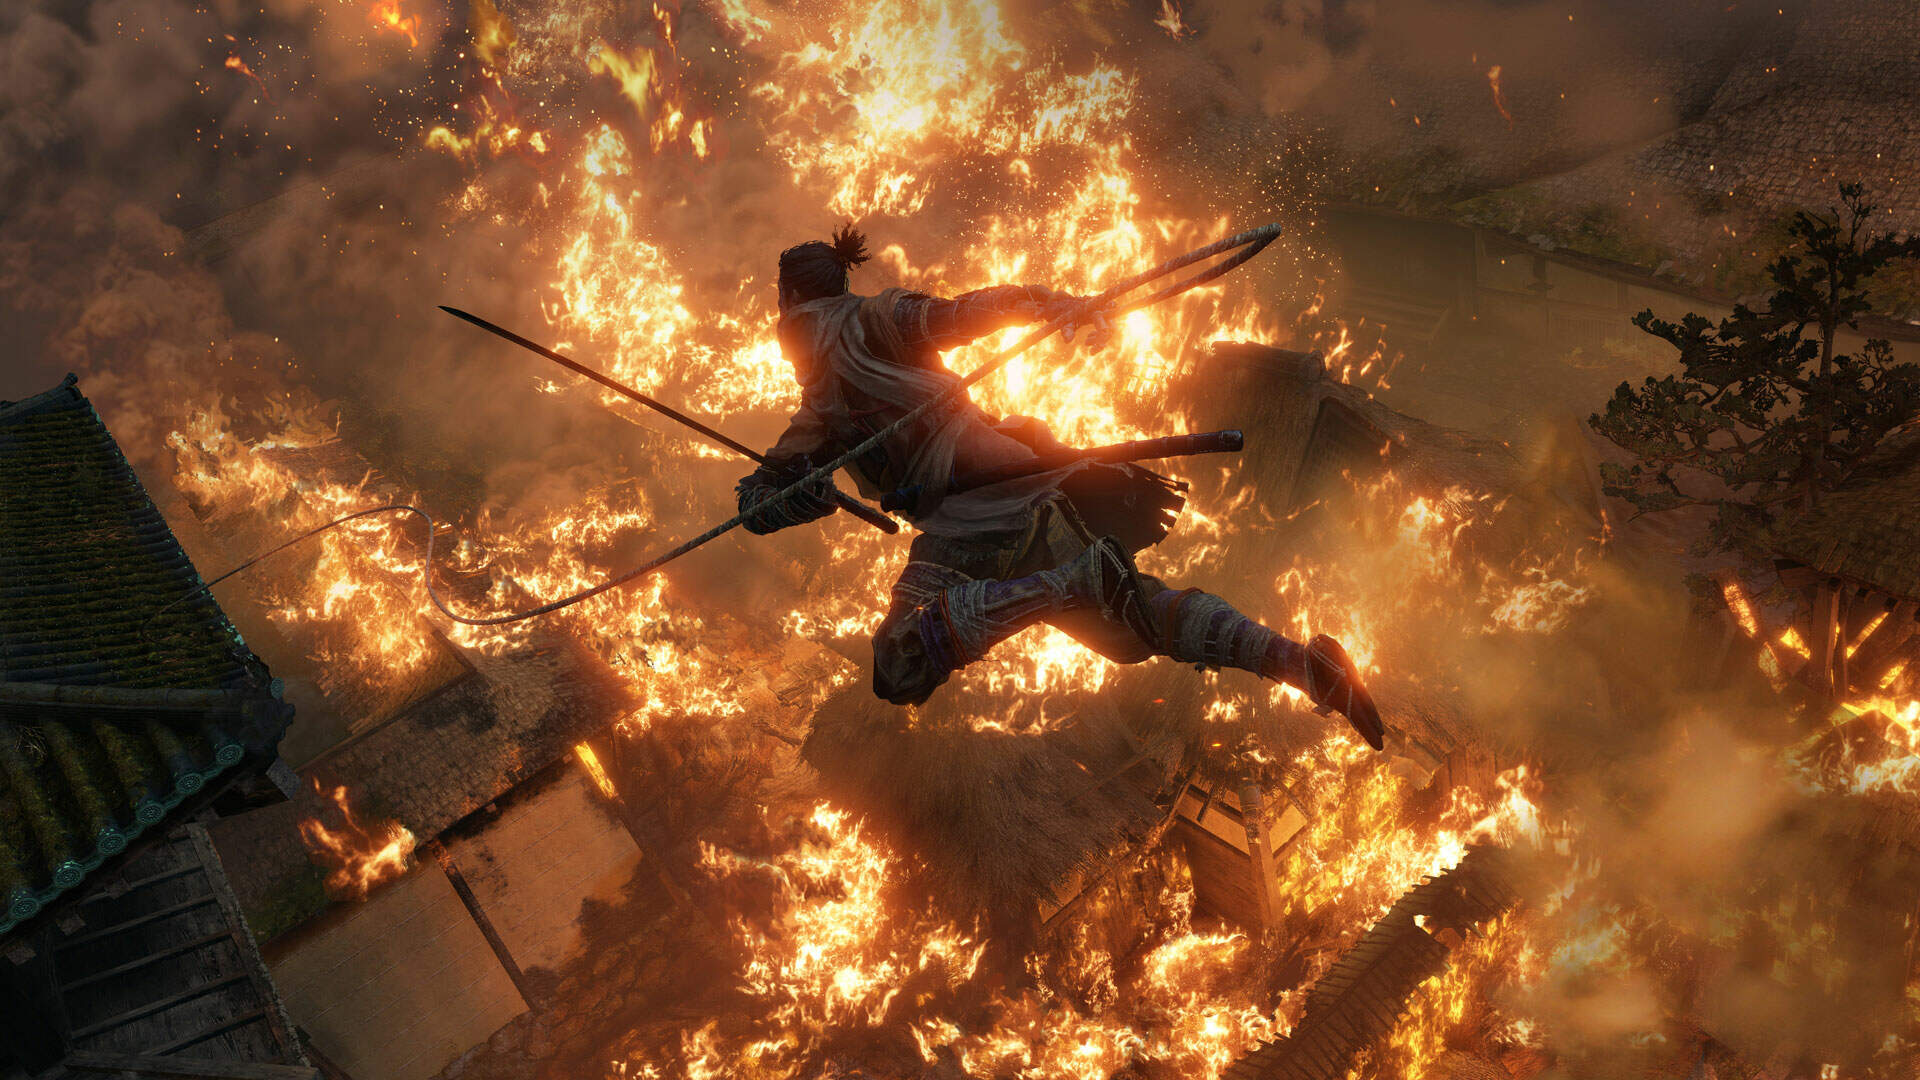 Sekiro Review Roundup, Release Date, Trophy List, PC Specs, FAQ - Everything we Know About Sekiro: Shadows Die Twice